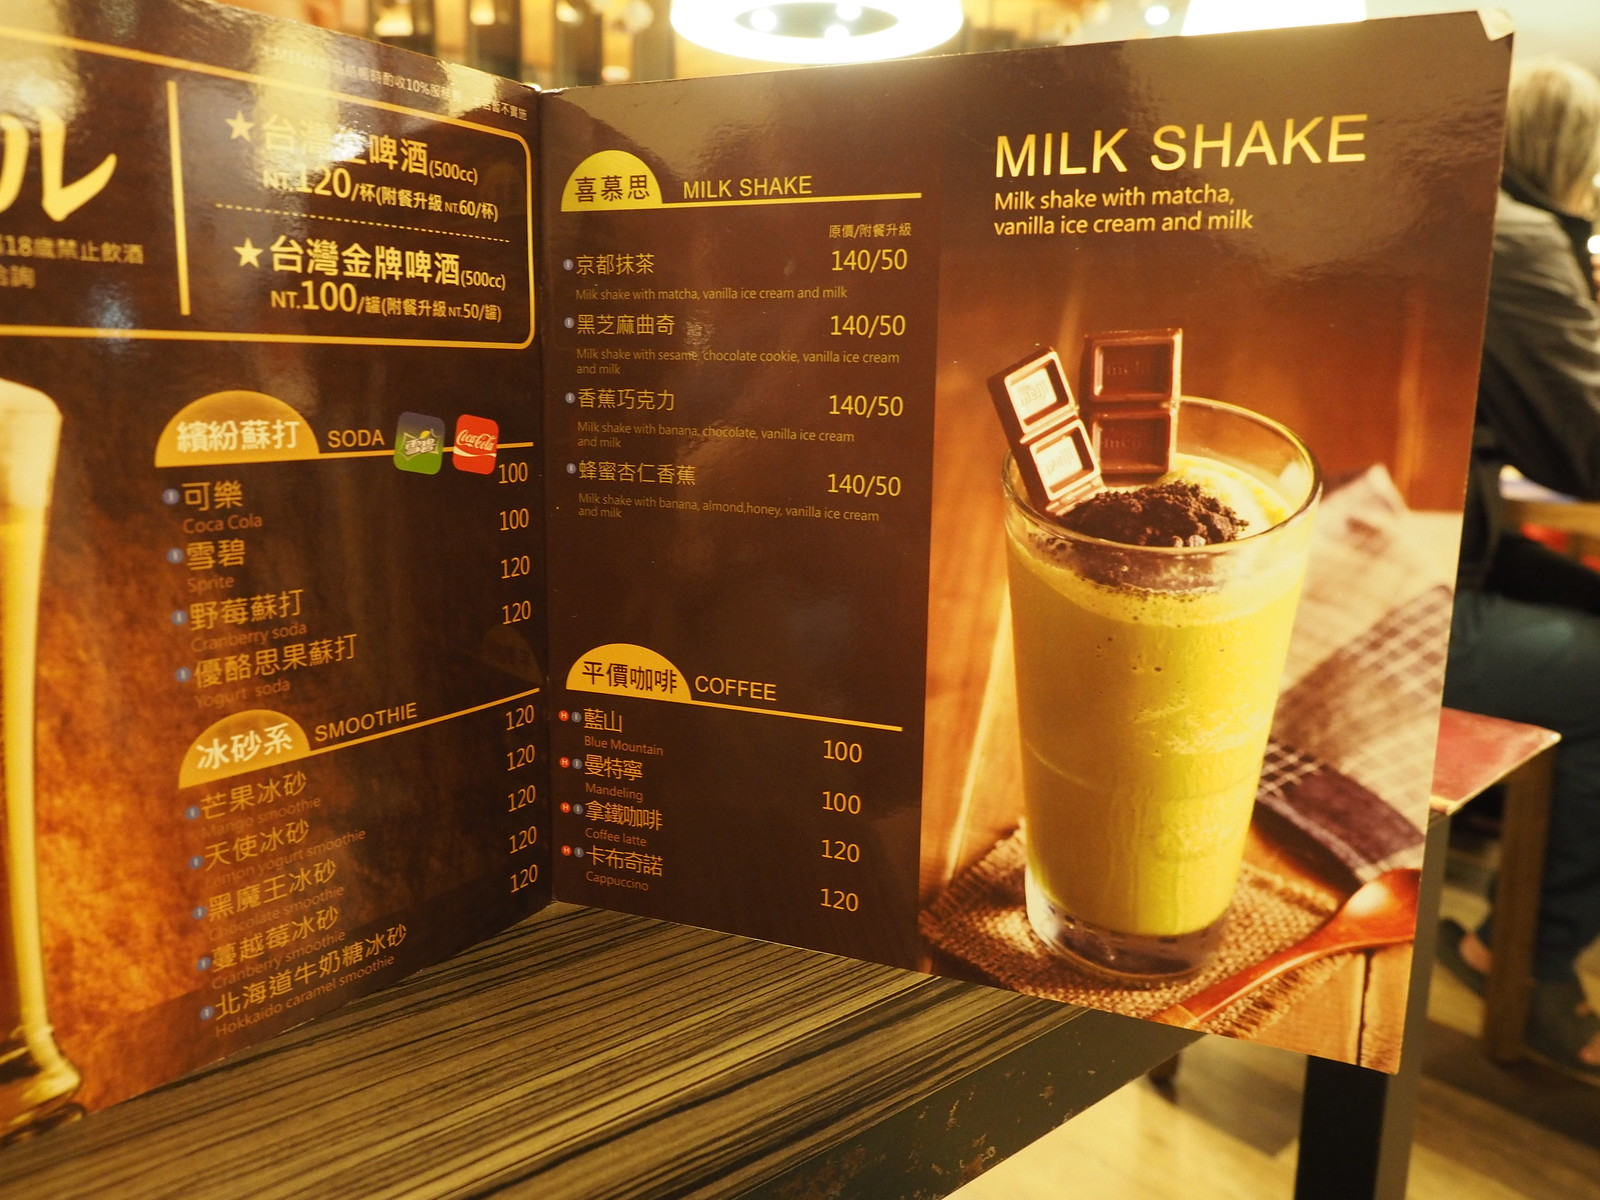 EZ.KON Restaurant's Milk Shake, Soda, Smoothie and Coffee menu